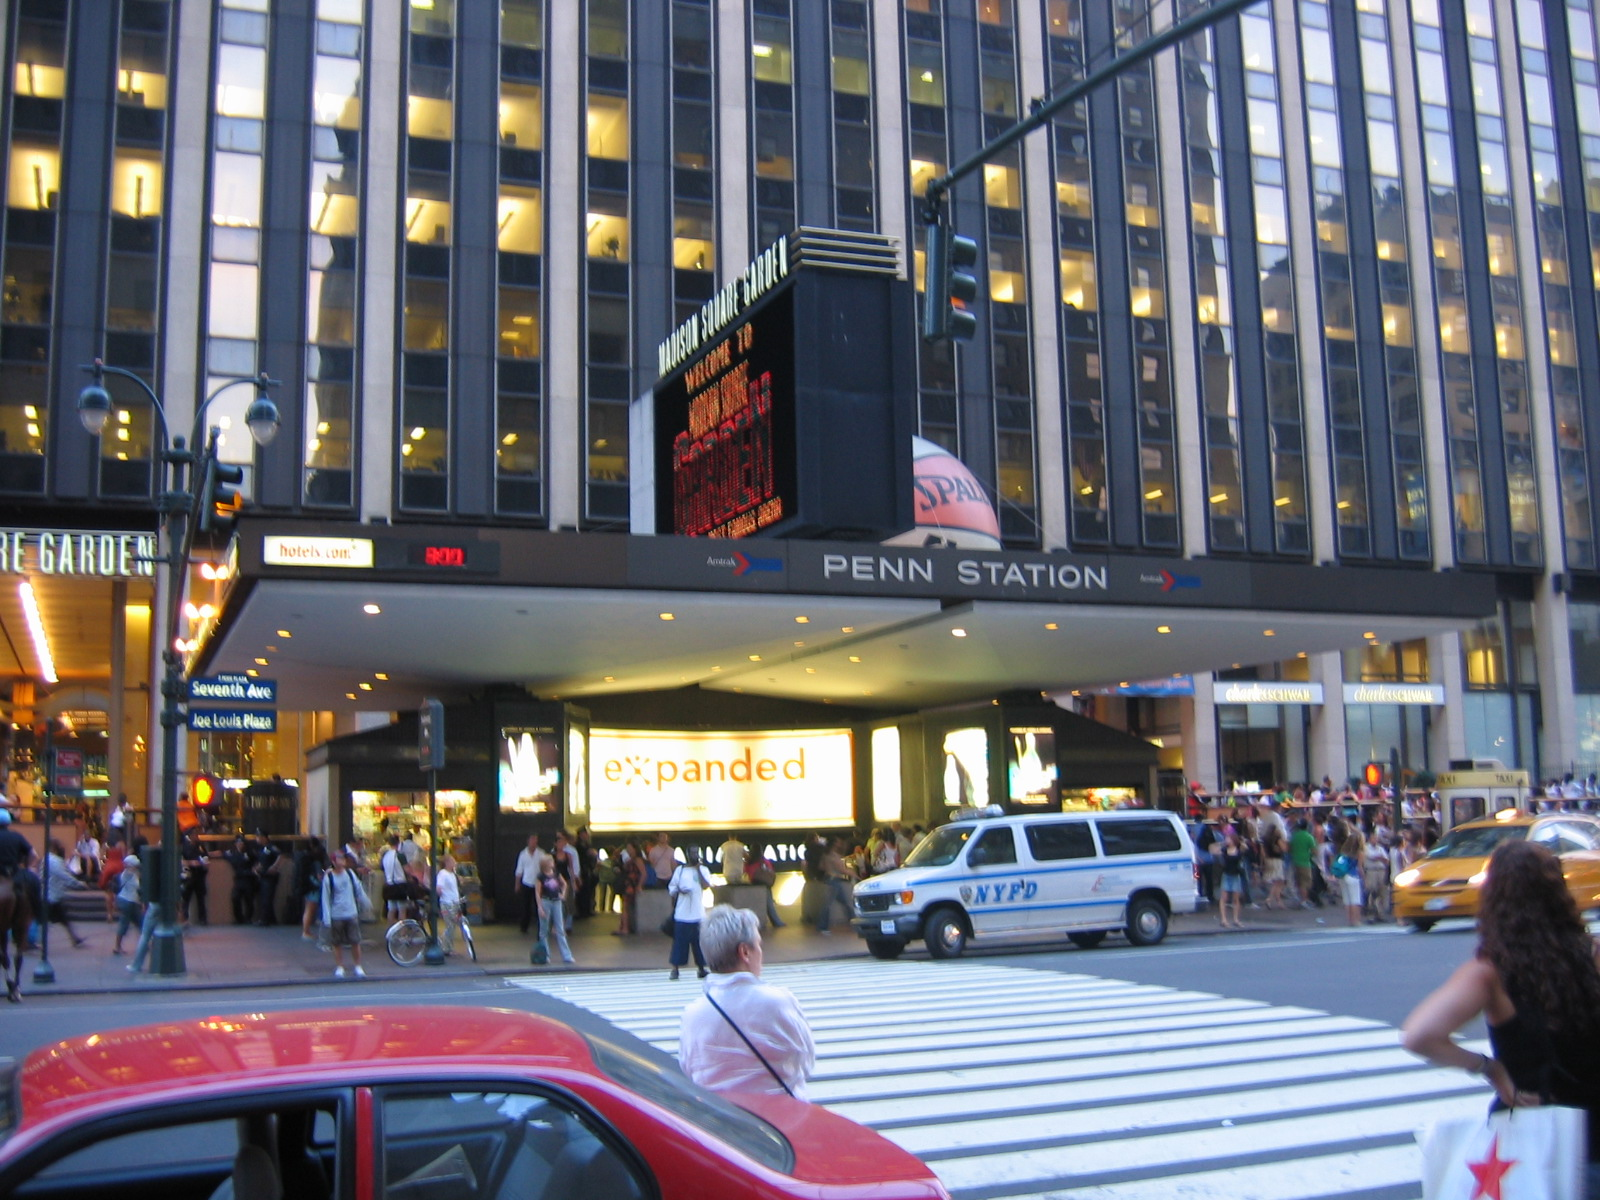 Explore New York: 8 Things to Do Near Penn Station